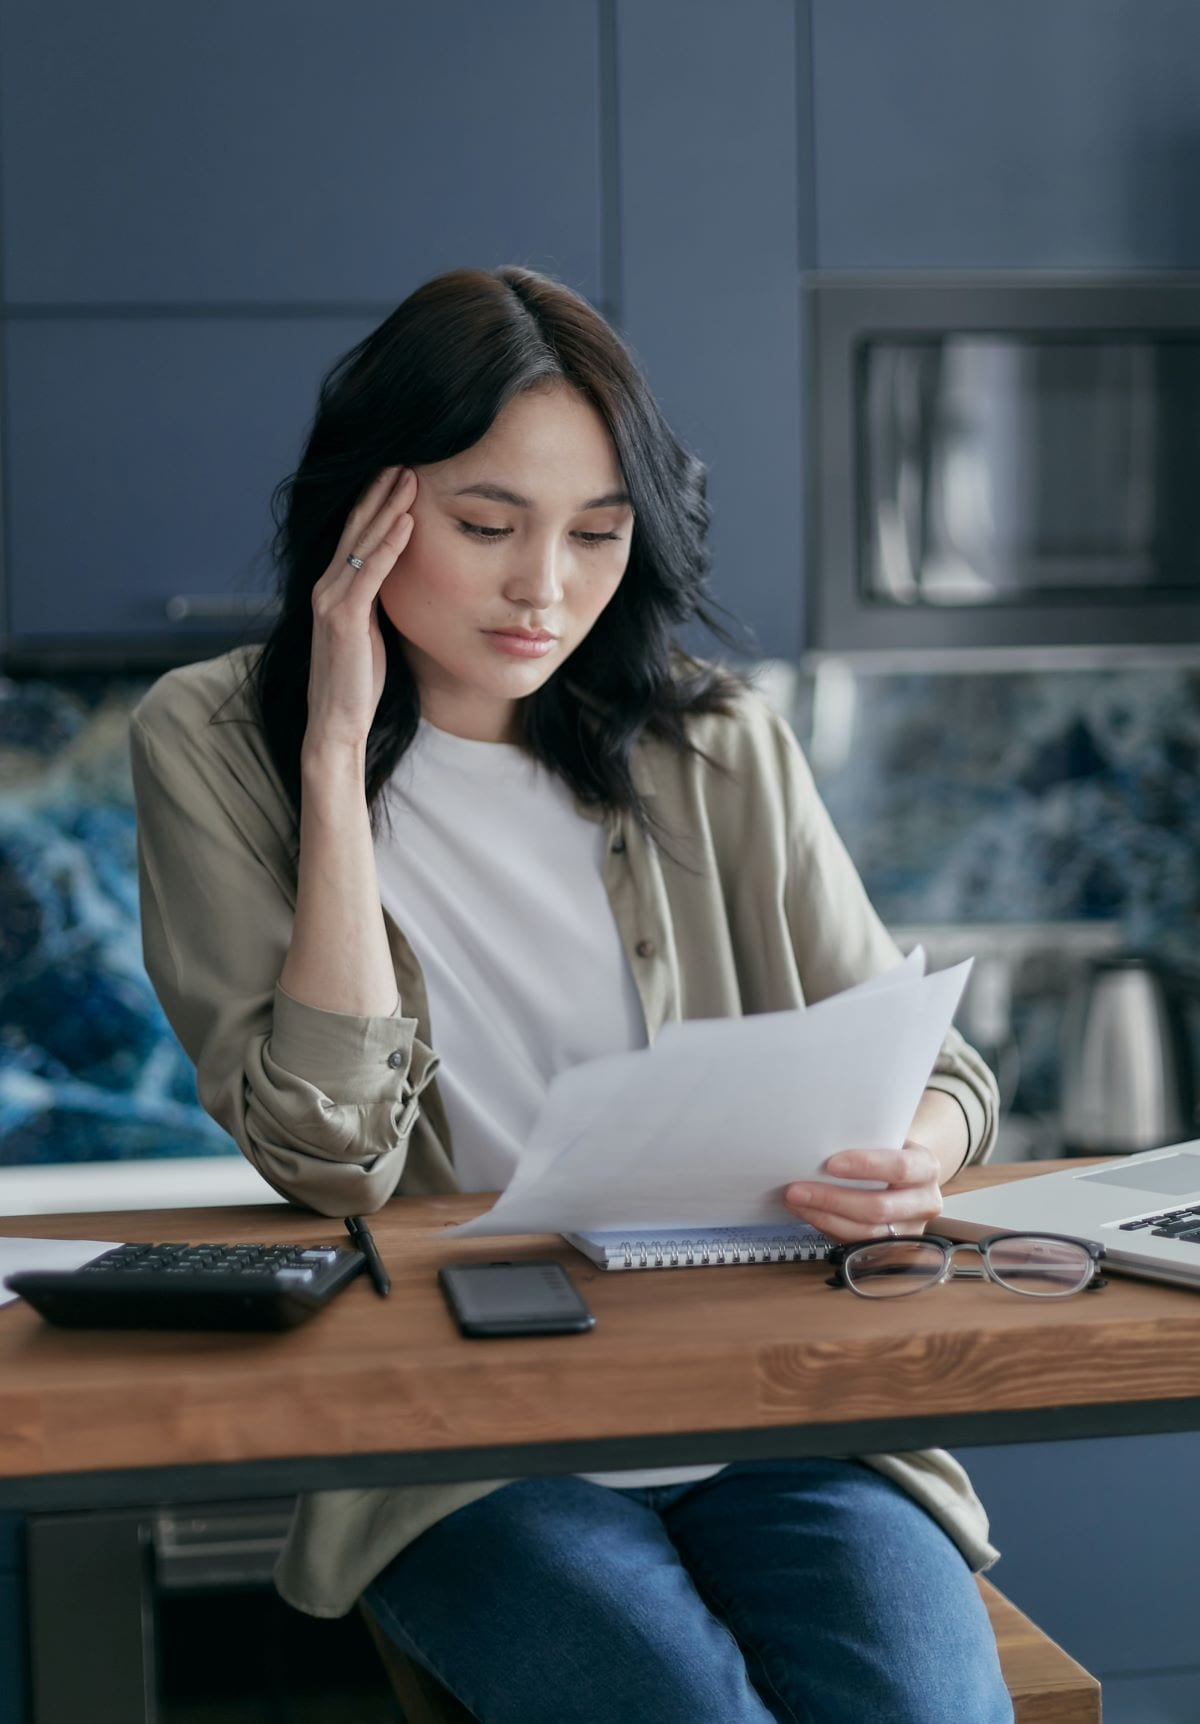 StrategyDriven Customer Relationship Management Article |Non-paying Customers|Non-Paying Customers and How to Handle Them